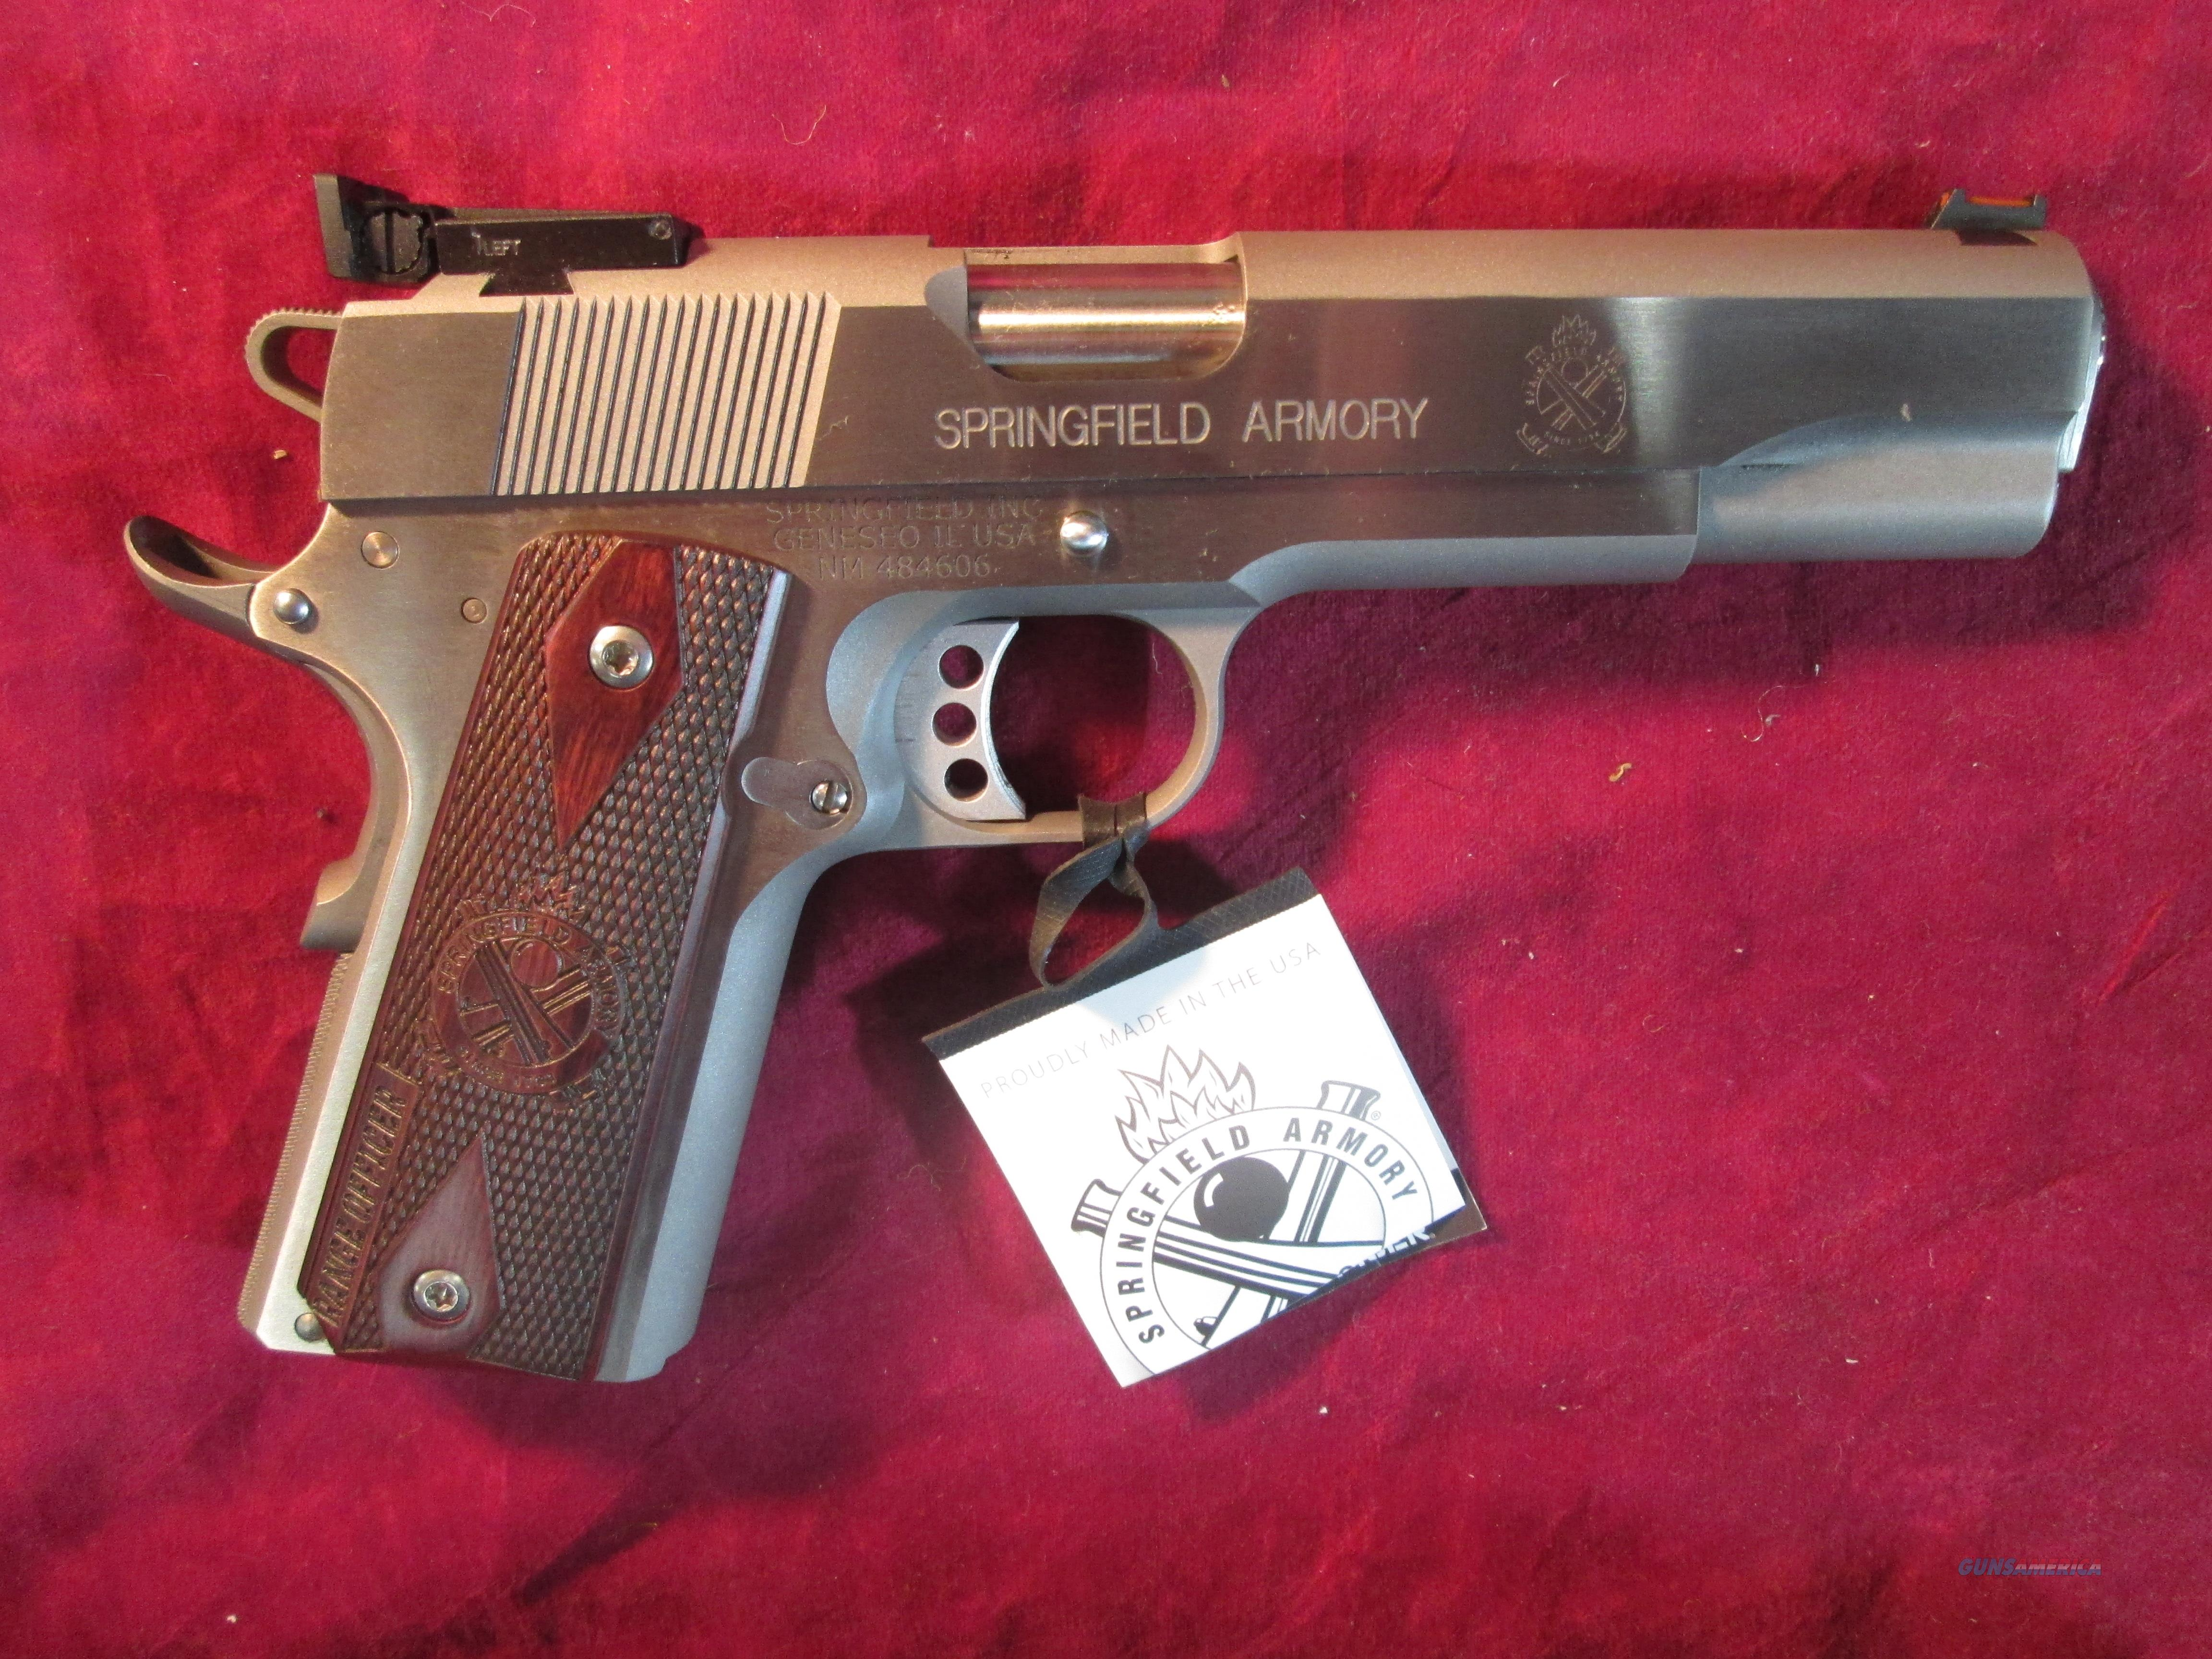 SPRINGFIELD ARMORY STAINLESS RANGE OFFICER 1911 45ACP W/ ADJUSTABLE SIGHTS NEW (PI9124L)    Guns > Pistols > Springfield Armory Pistols > 1911 Type